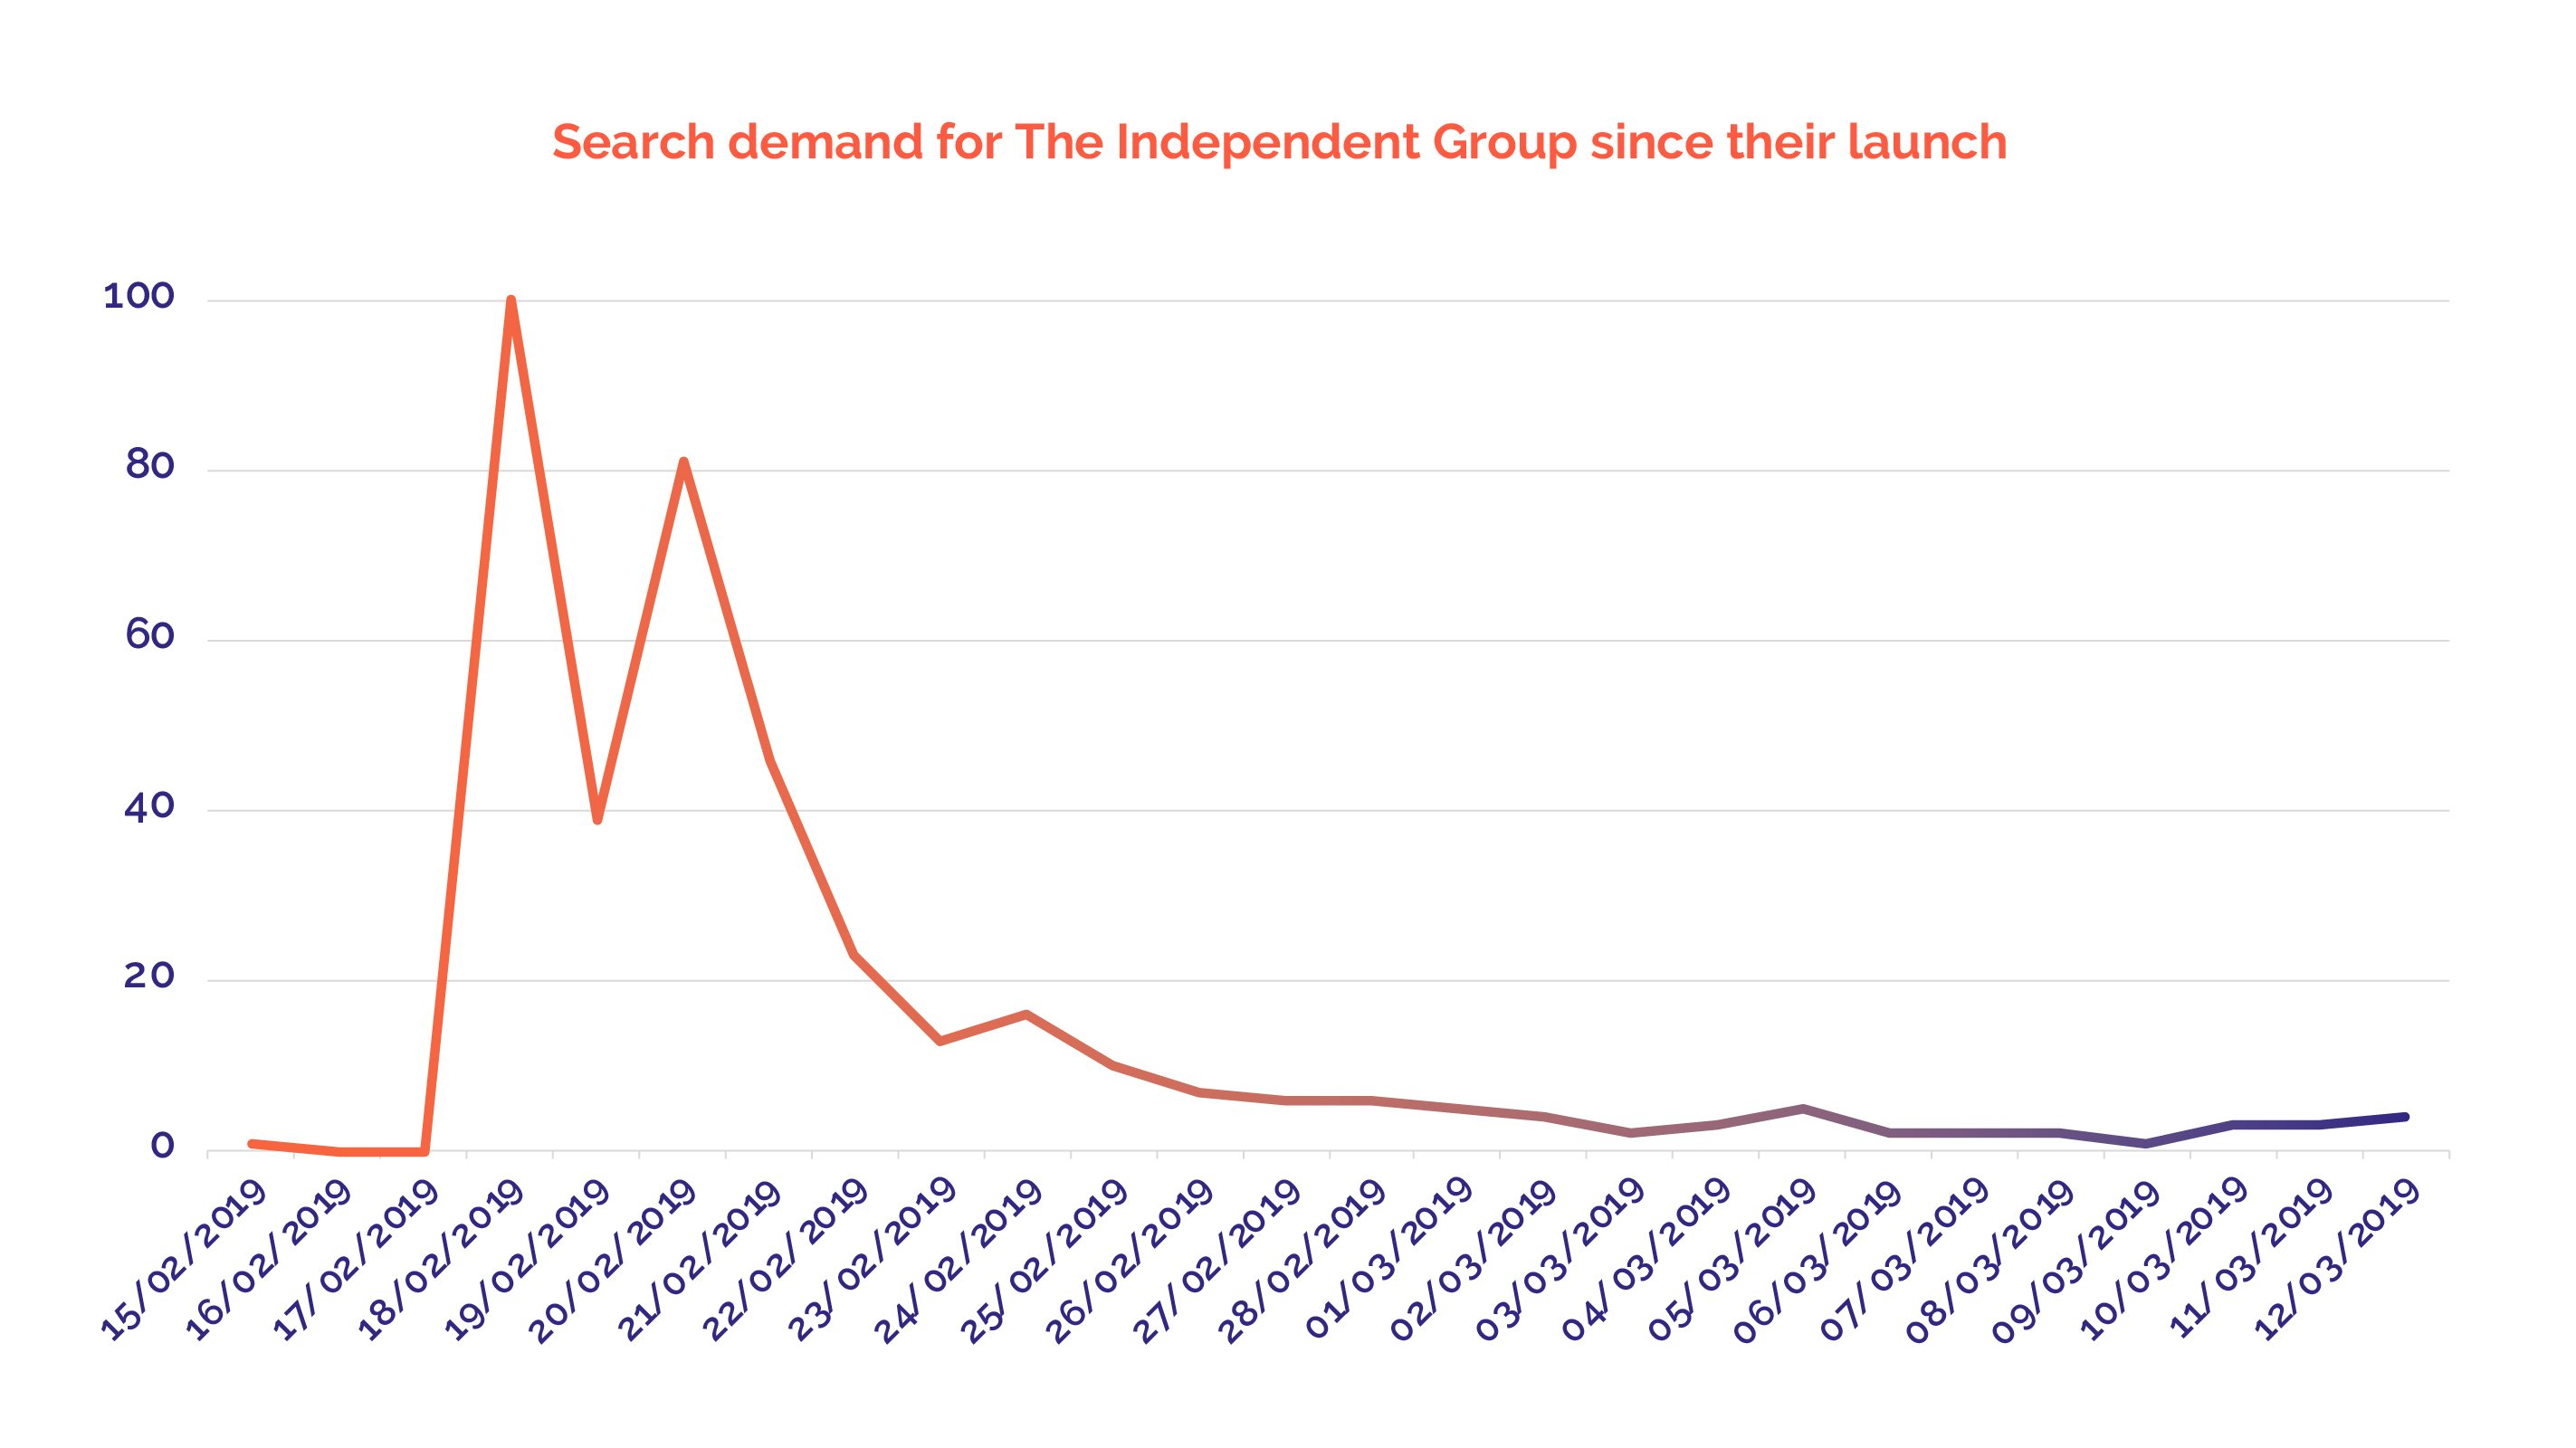 Search demand for the Indepent Group (now Change UK)